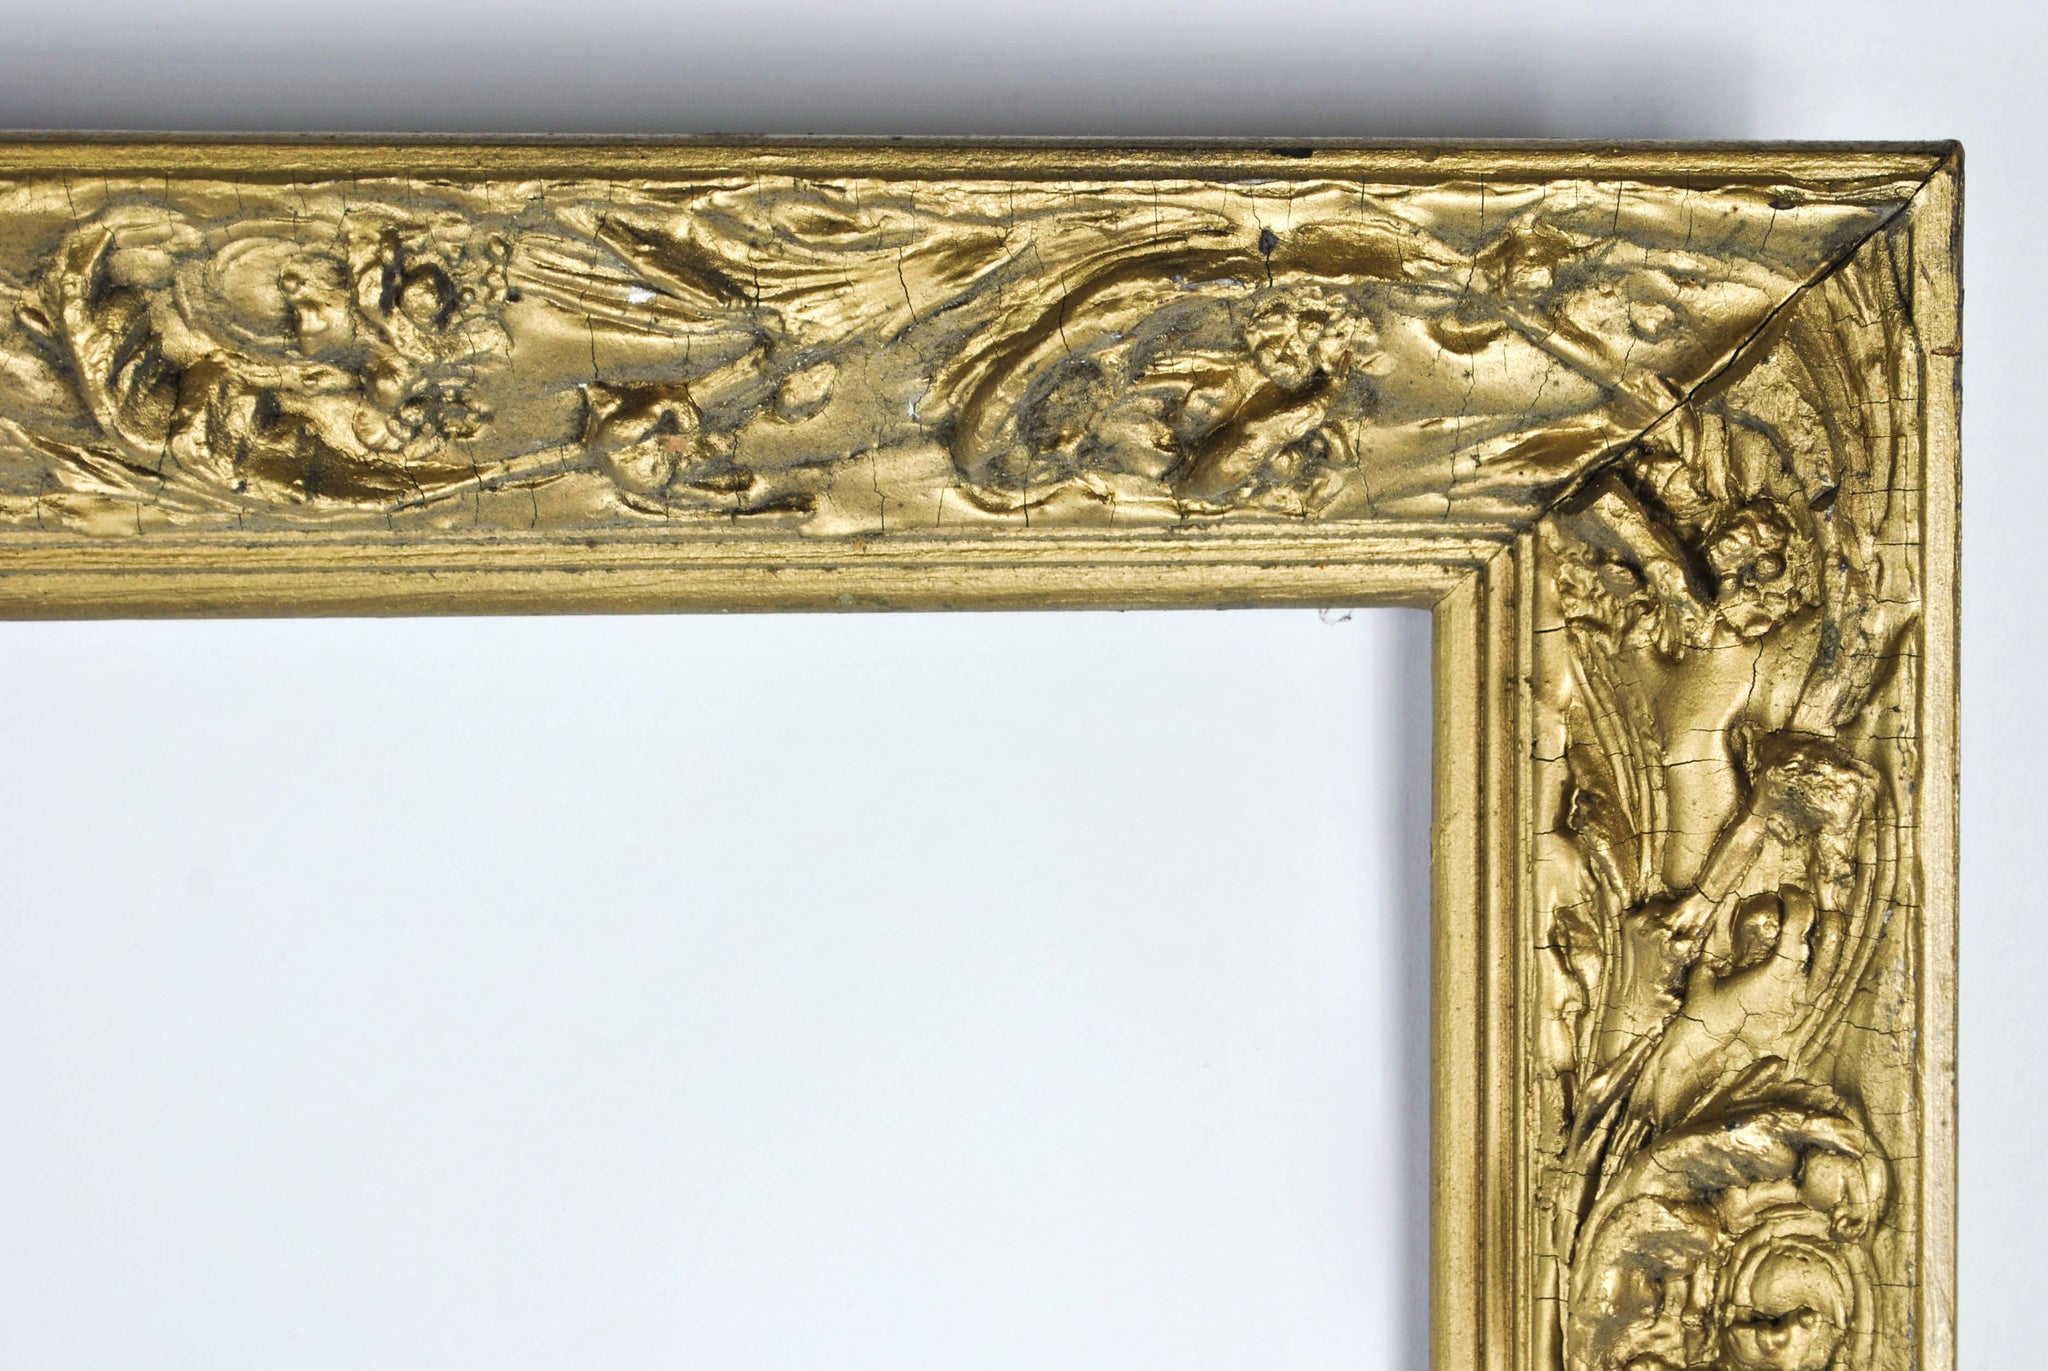 Antique carved wood gold gilt european style frame with baroque antique carved wood gold gilt european style frame with baroque accents 28x44 jeuxipadfo Image collections